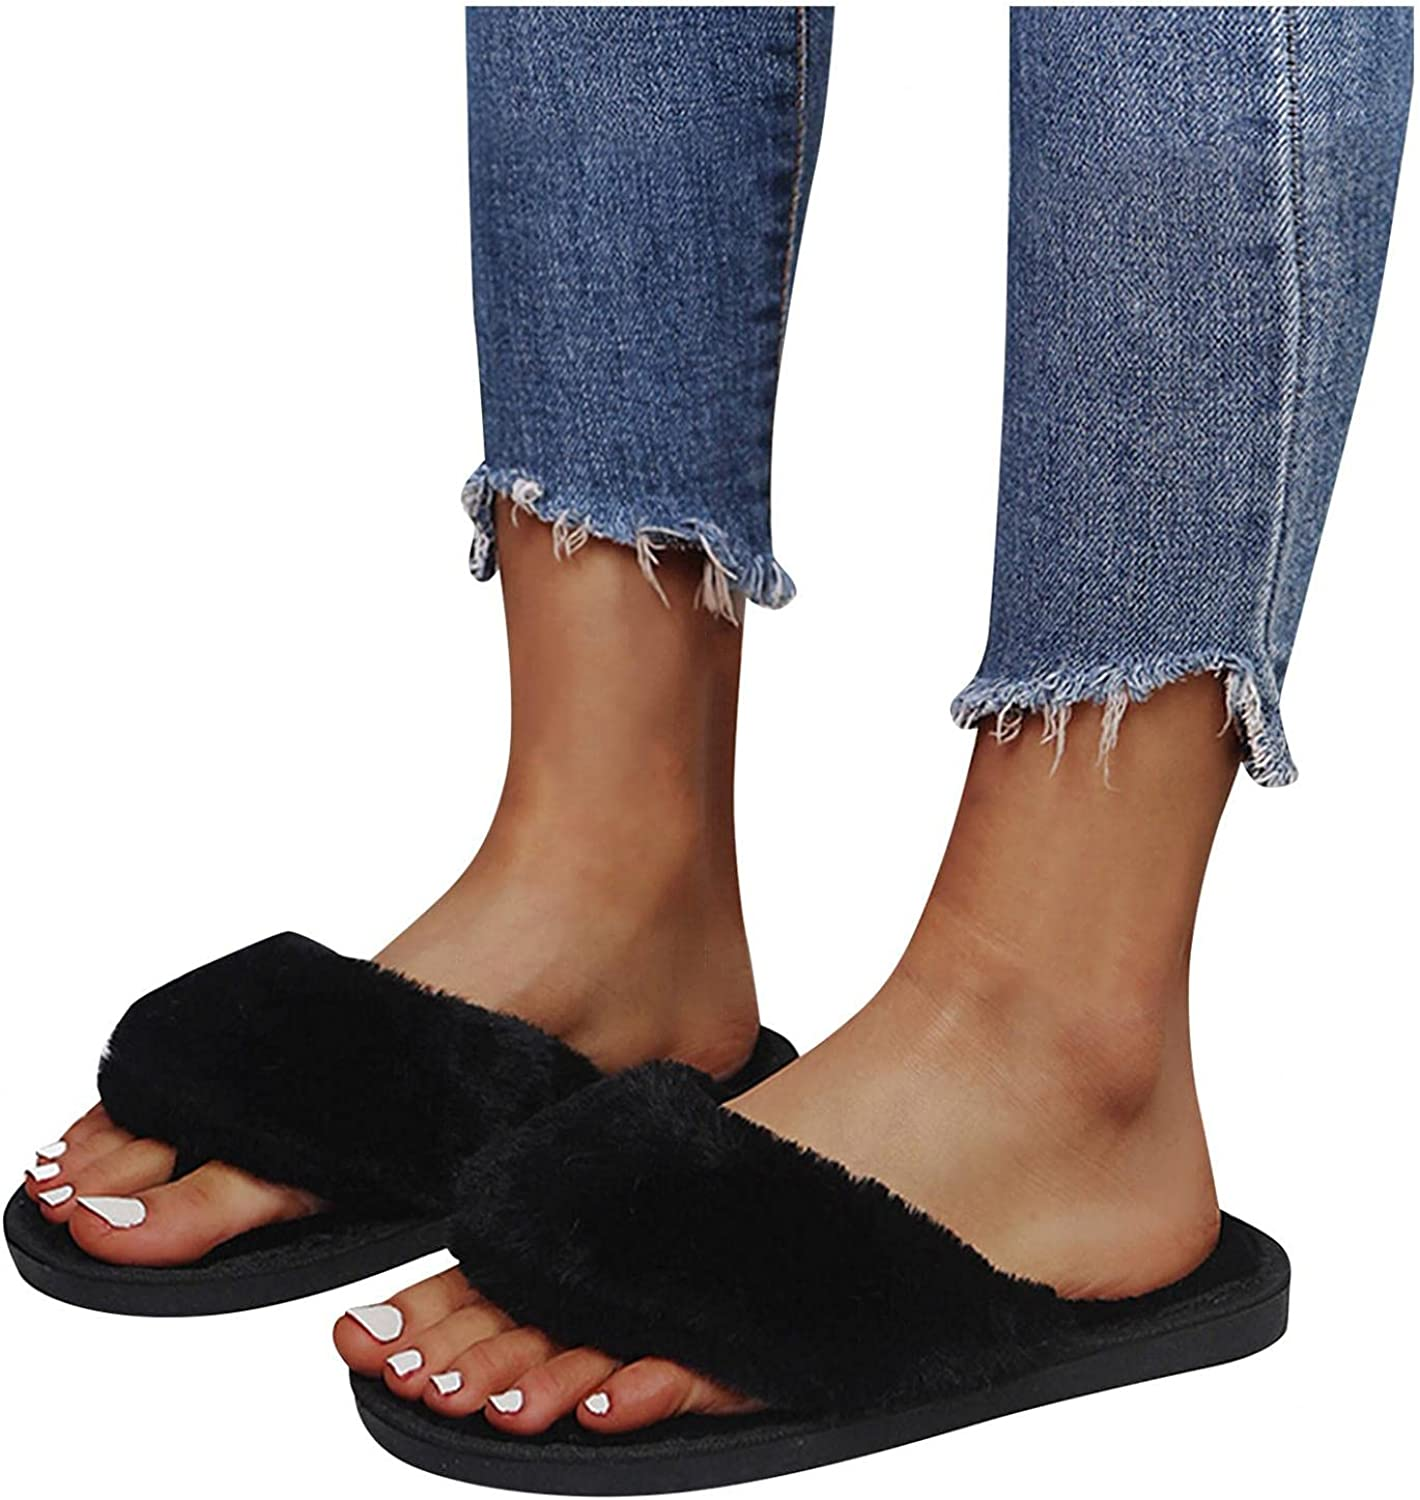 AODONG Slippers for Women Open Toe Breathable Fuzzy Comfy Indoor Outdoor House Home Slipper Warm Slip On Sandals